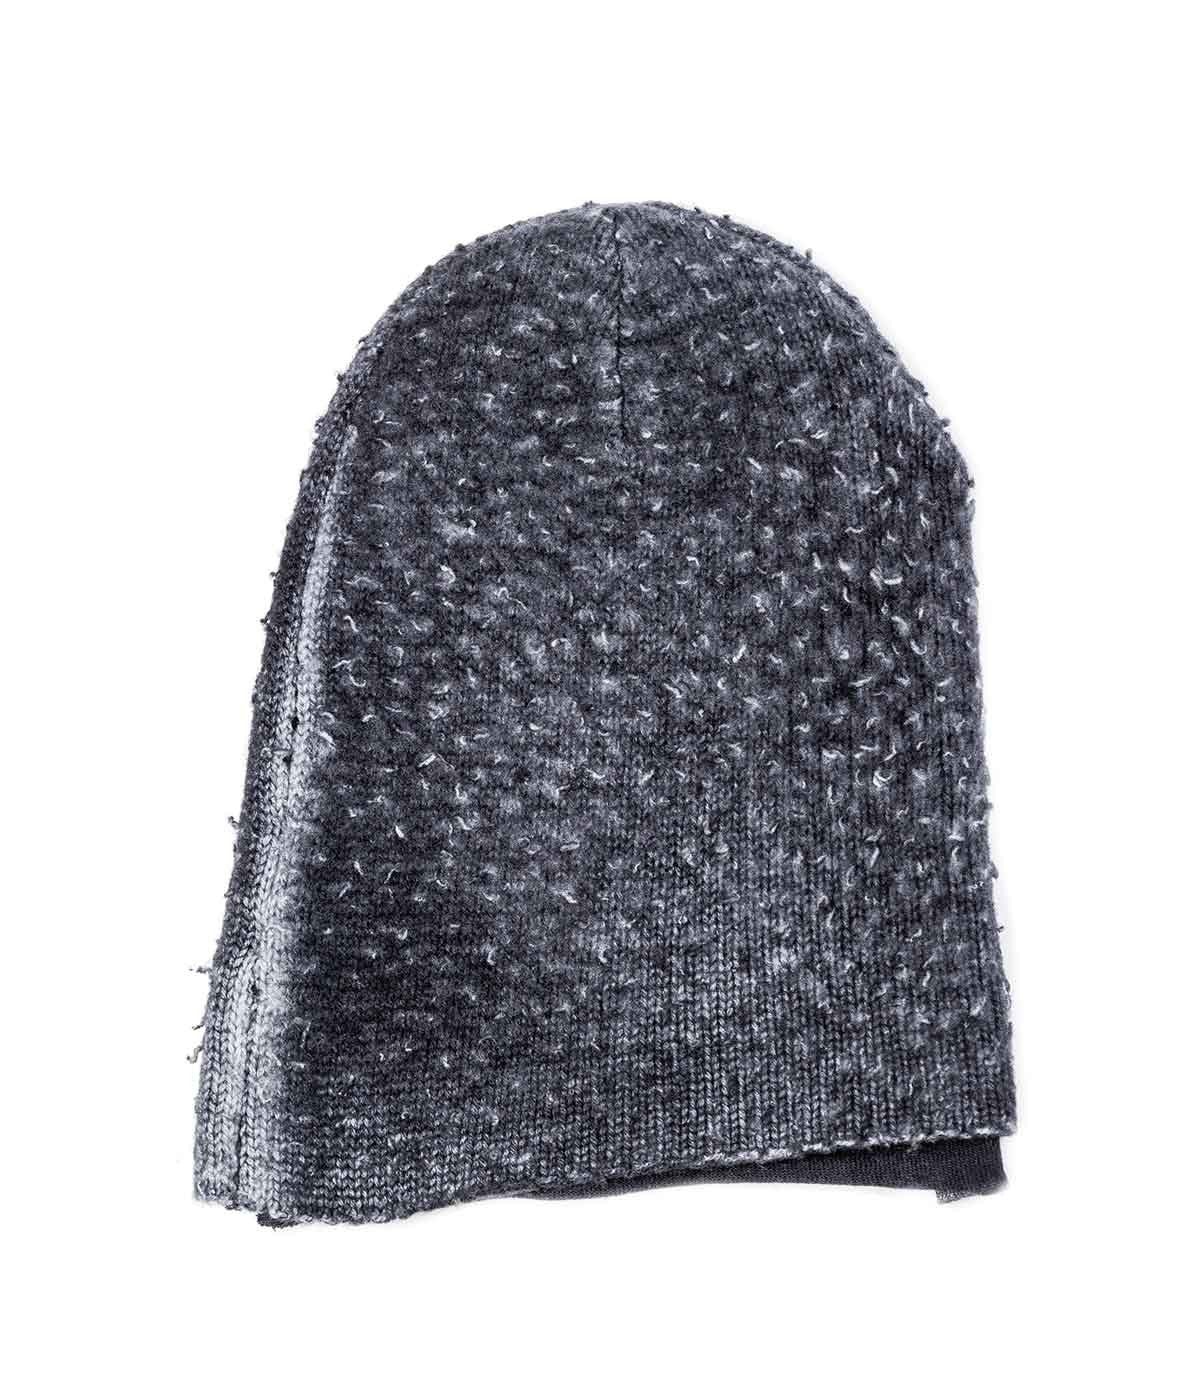 Double-Layered Textured Grey Toque